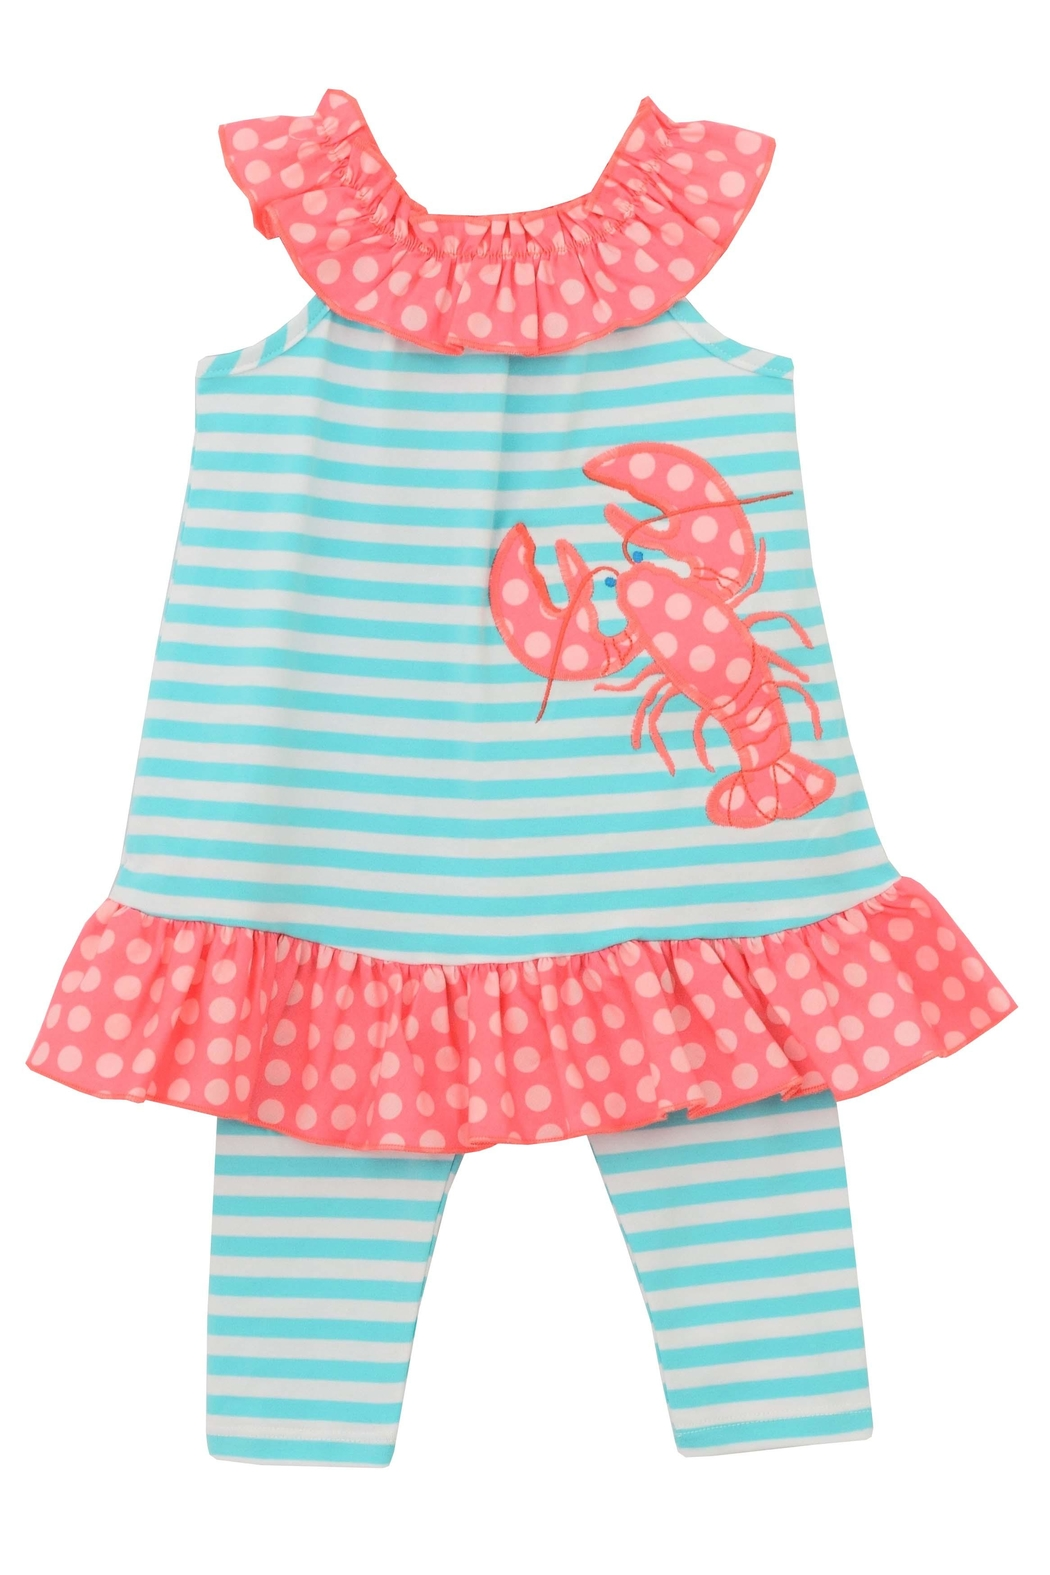 bailey boys lobster set from florida by yoyo children s boutique